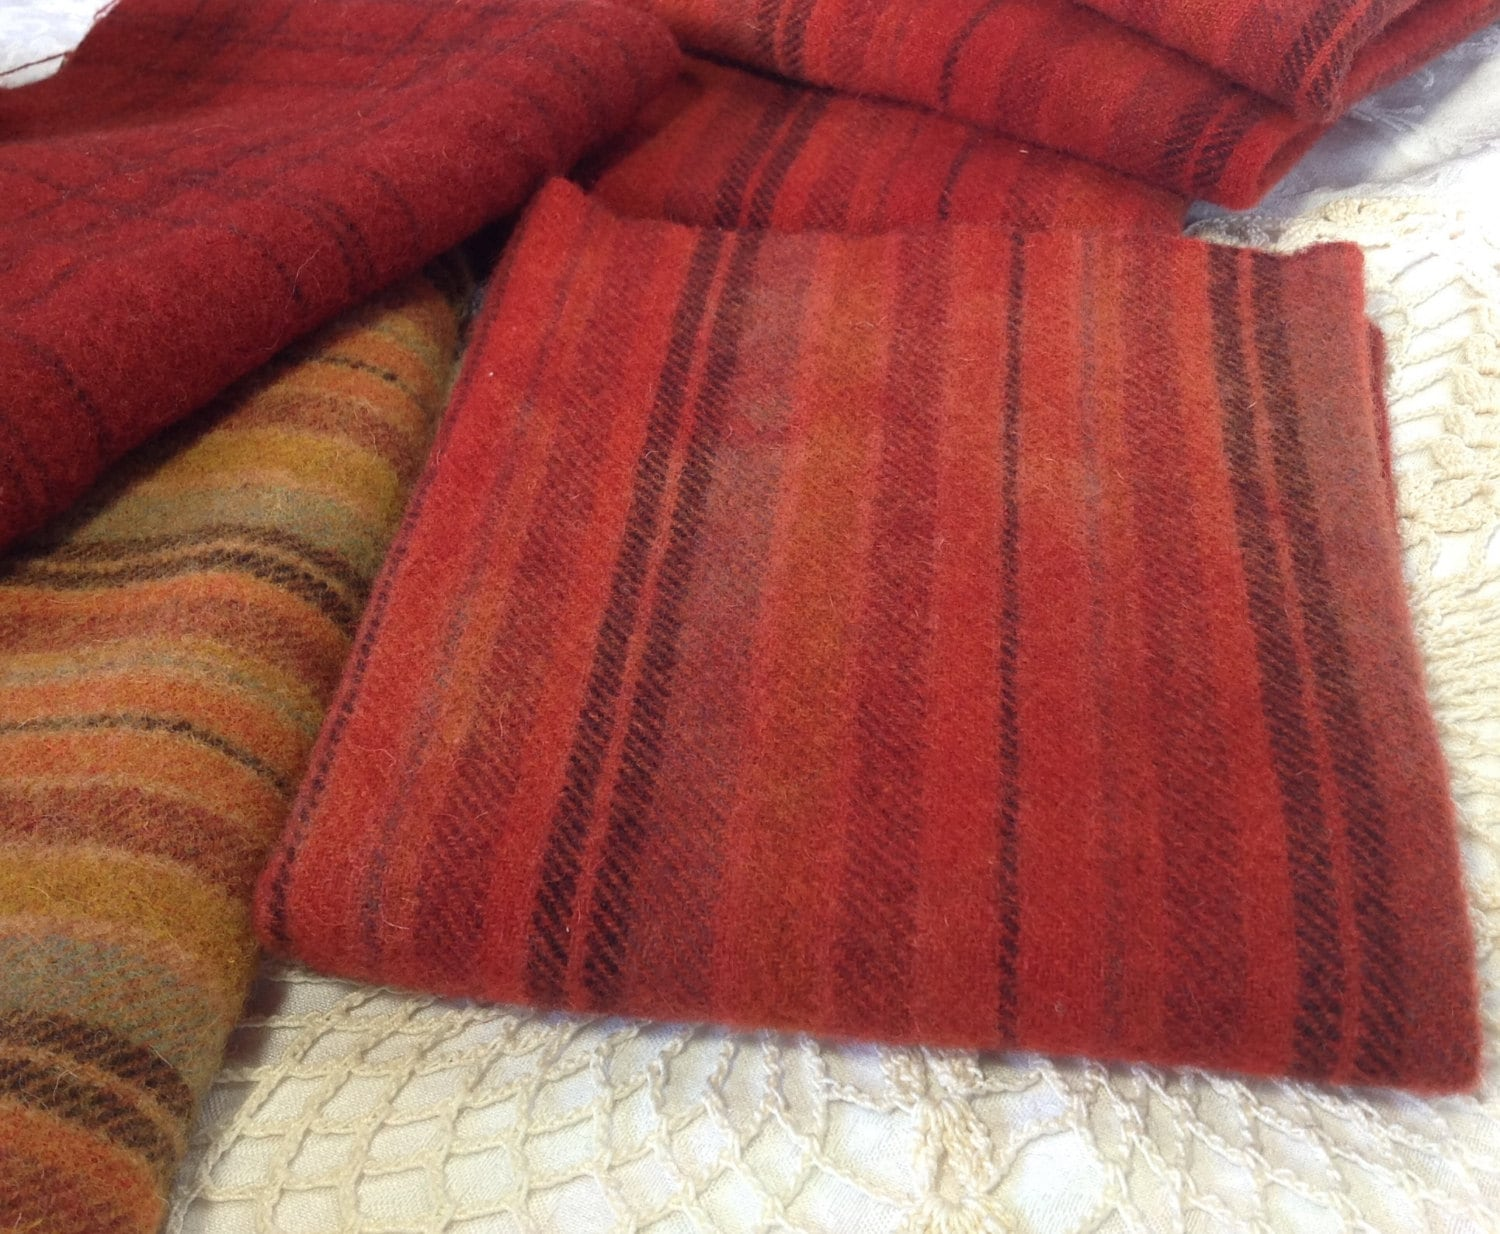 Red Orange Striped Wool 1 Fat Quarter Hand Dyed For Rug